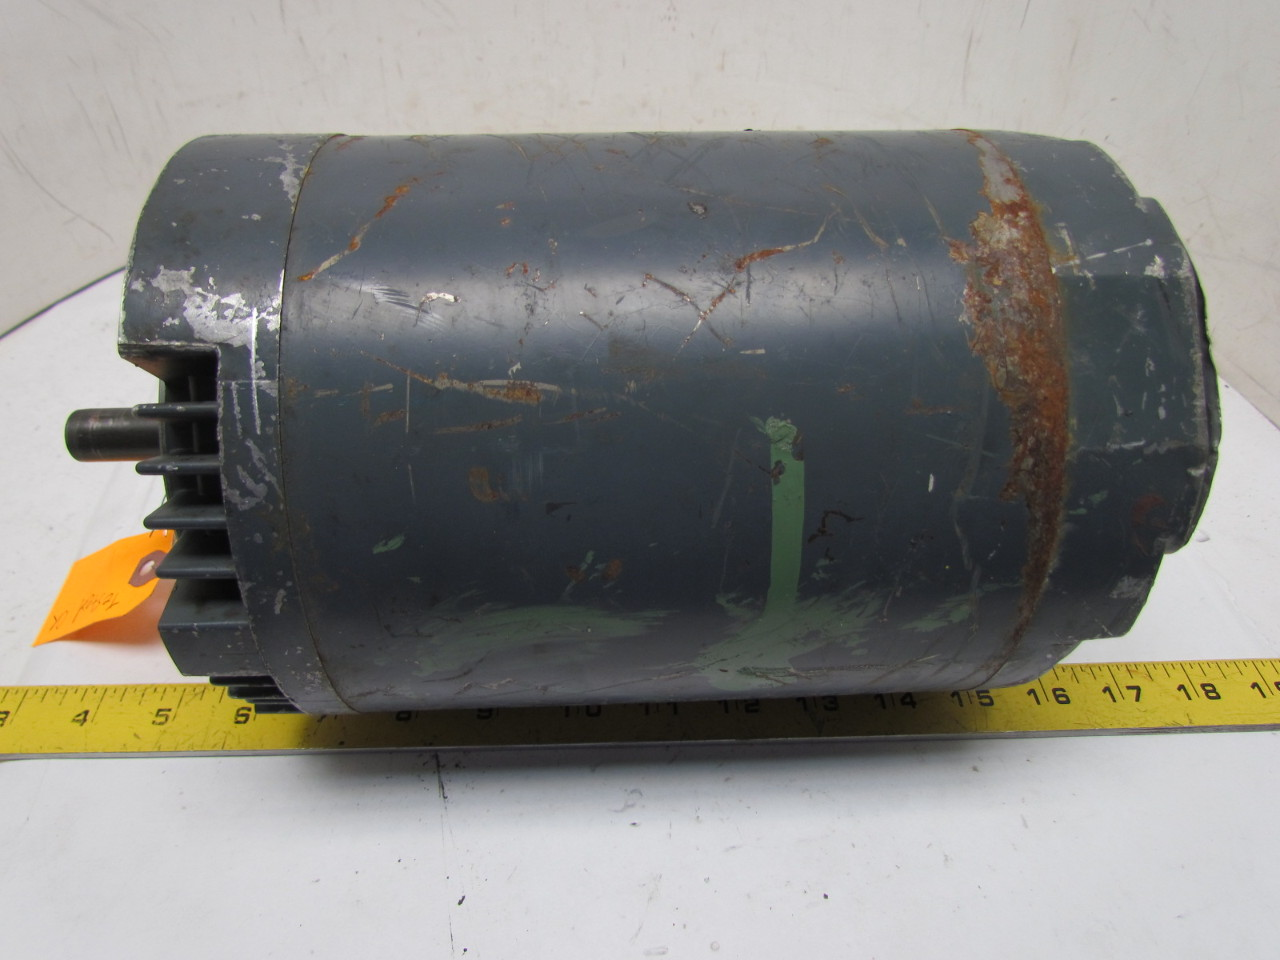 Westinghouse 311p134a 1 2 hp electric motor 230 460v 3ph for 1 2 horsepower electric motor